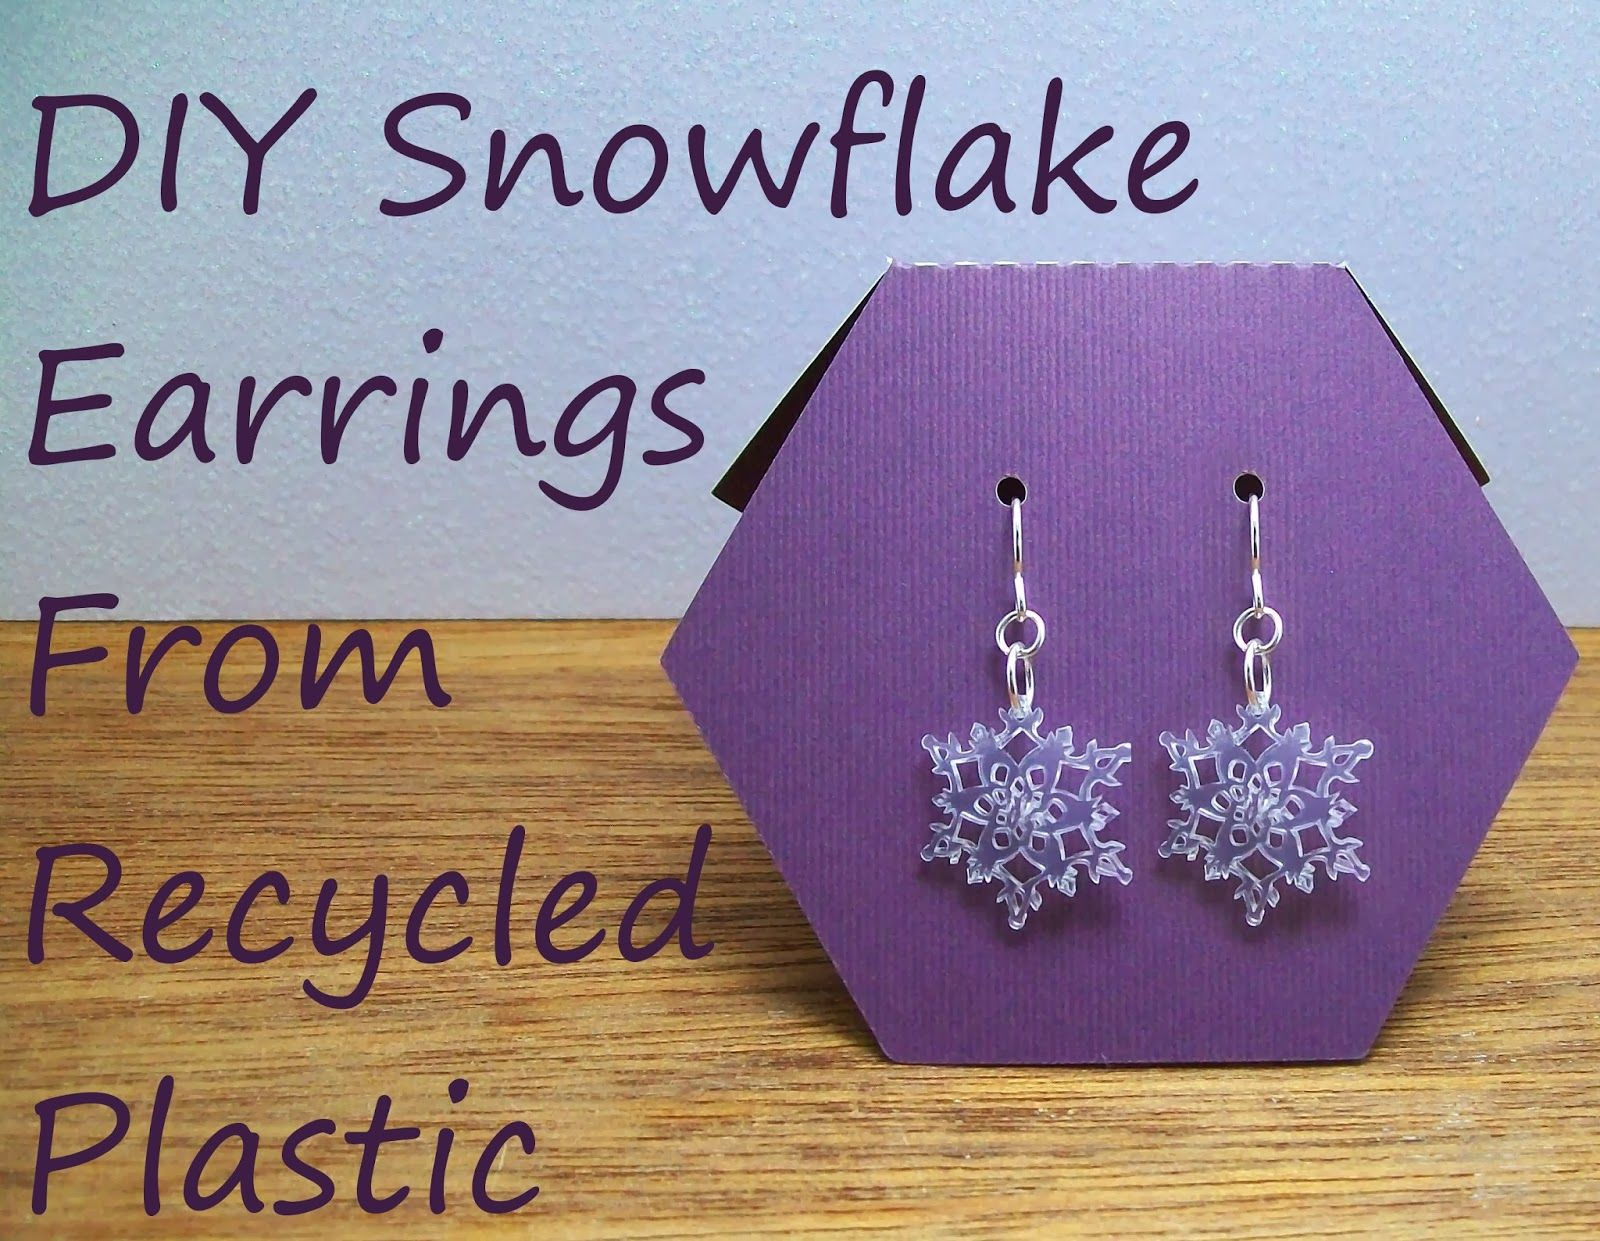 diy snowflake earring tutorial made from recycled plastic just